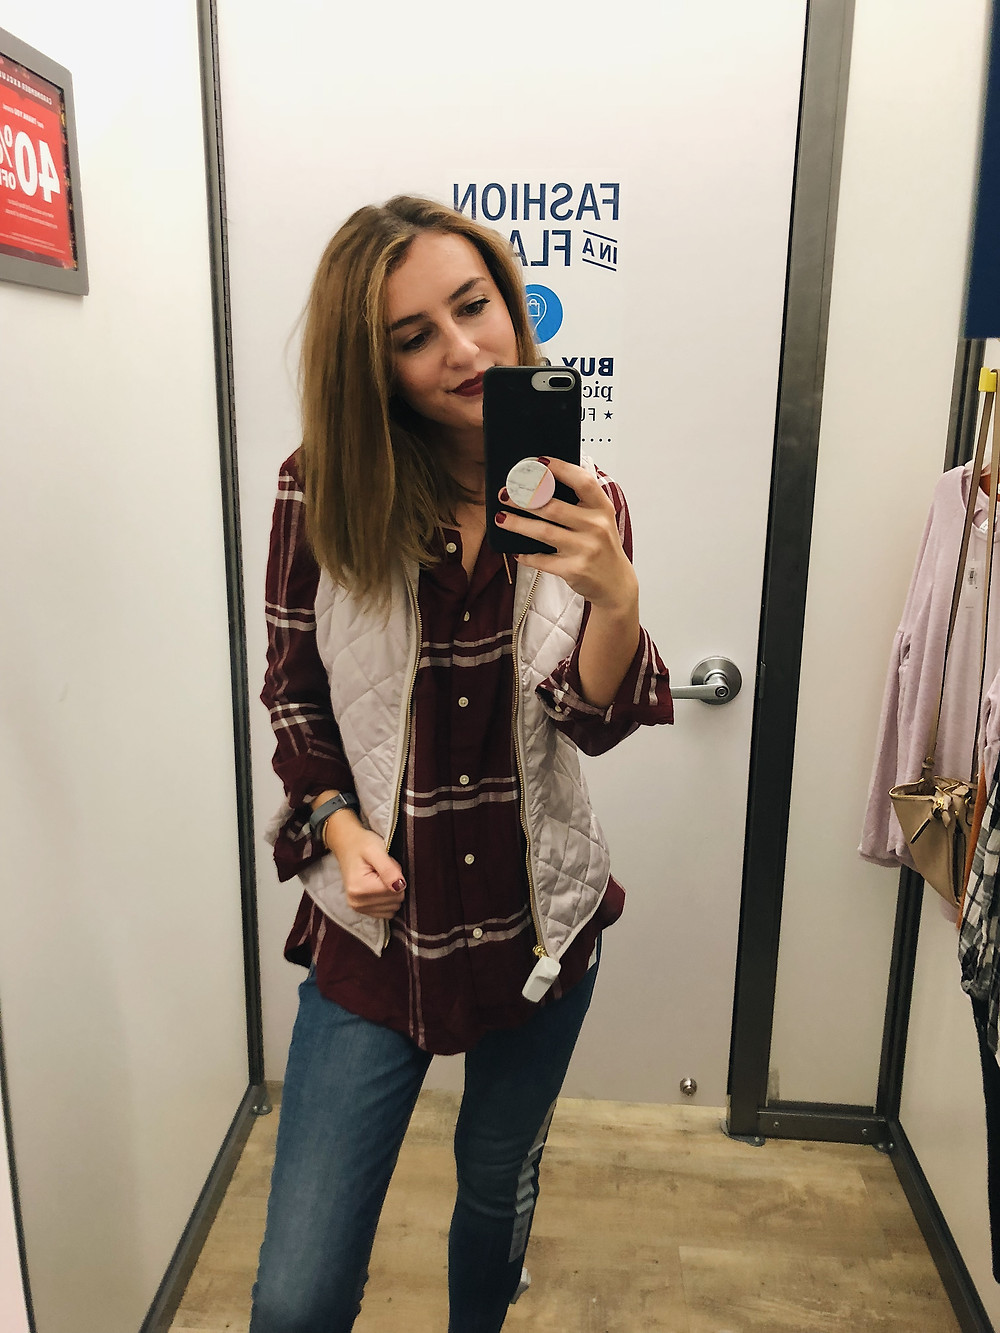 Quilted Vest with Relaxed Flannel Top - Old navy; Abby Graf; Try-On Haul